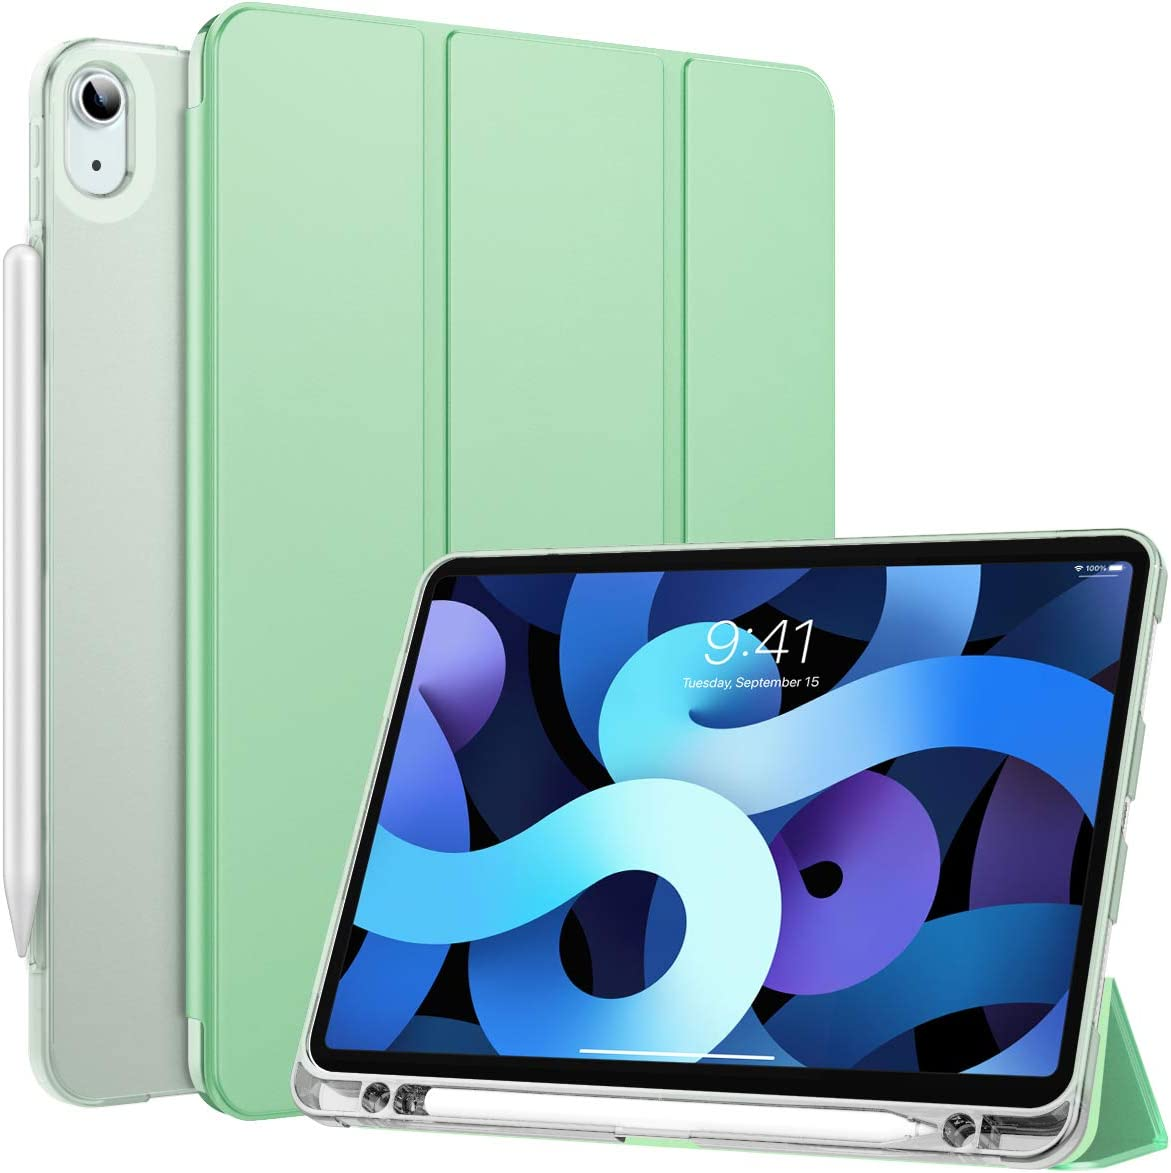 MoKo Case Fit New iPad Air 4th Generation 2020 - iPad Air 4 Case with Pencil Holder, Soft TPU Smart Trifold Shell Cover with Translucent Back Case for iPad Air 10.9